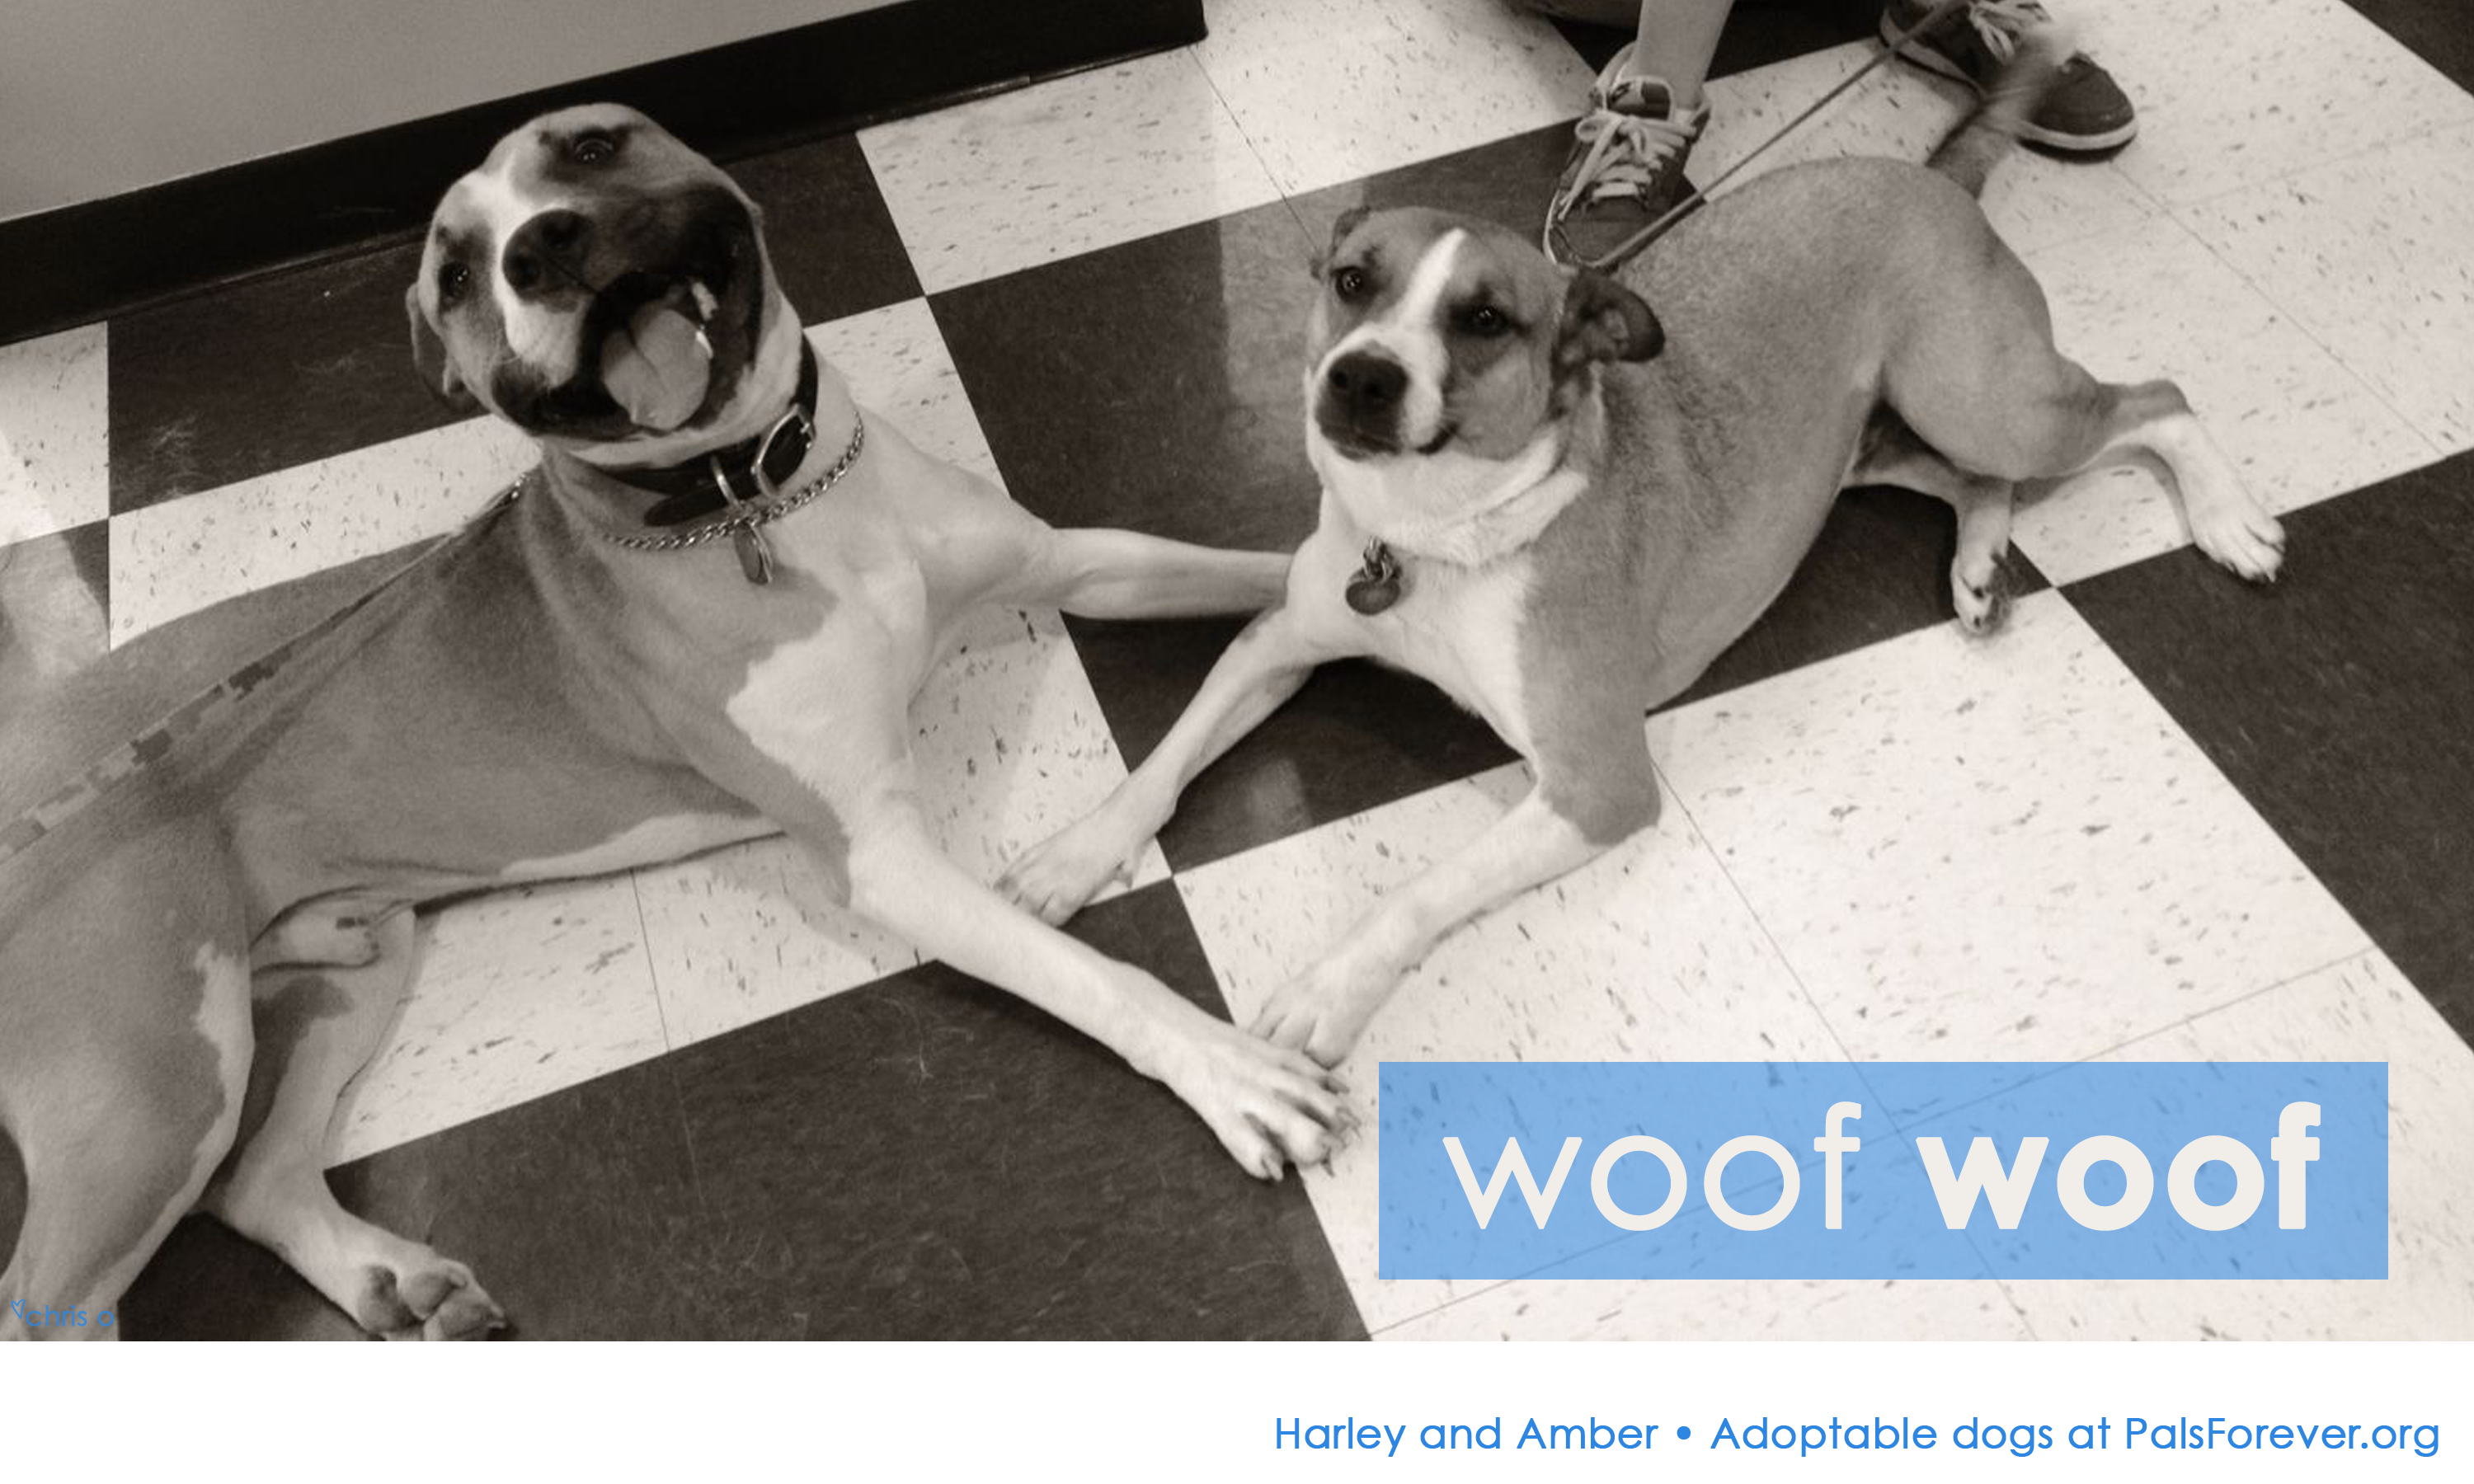 Adoptable Dogs: Harley and Amber